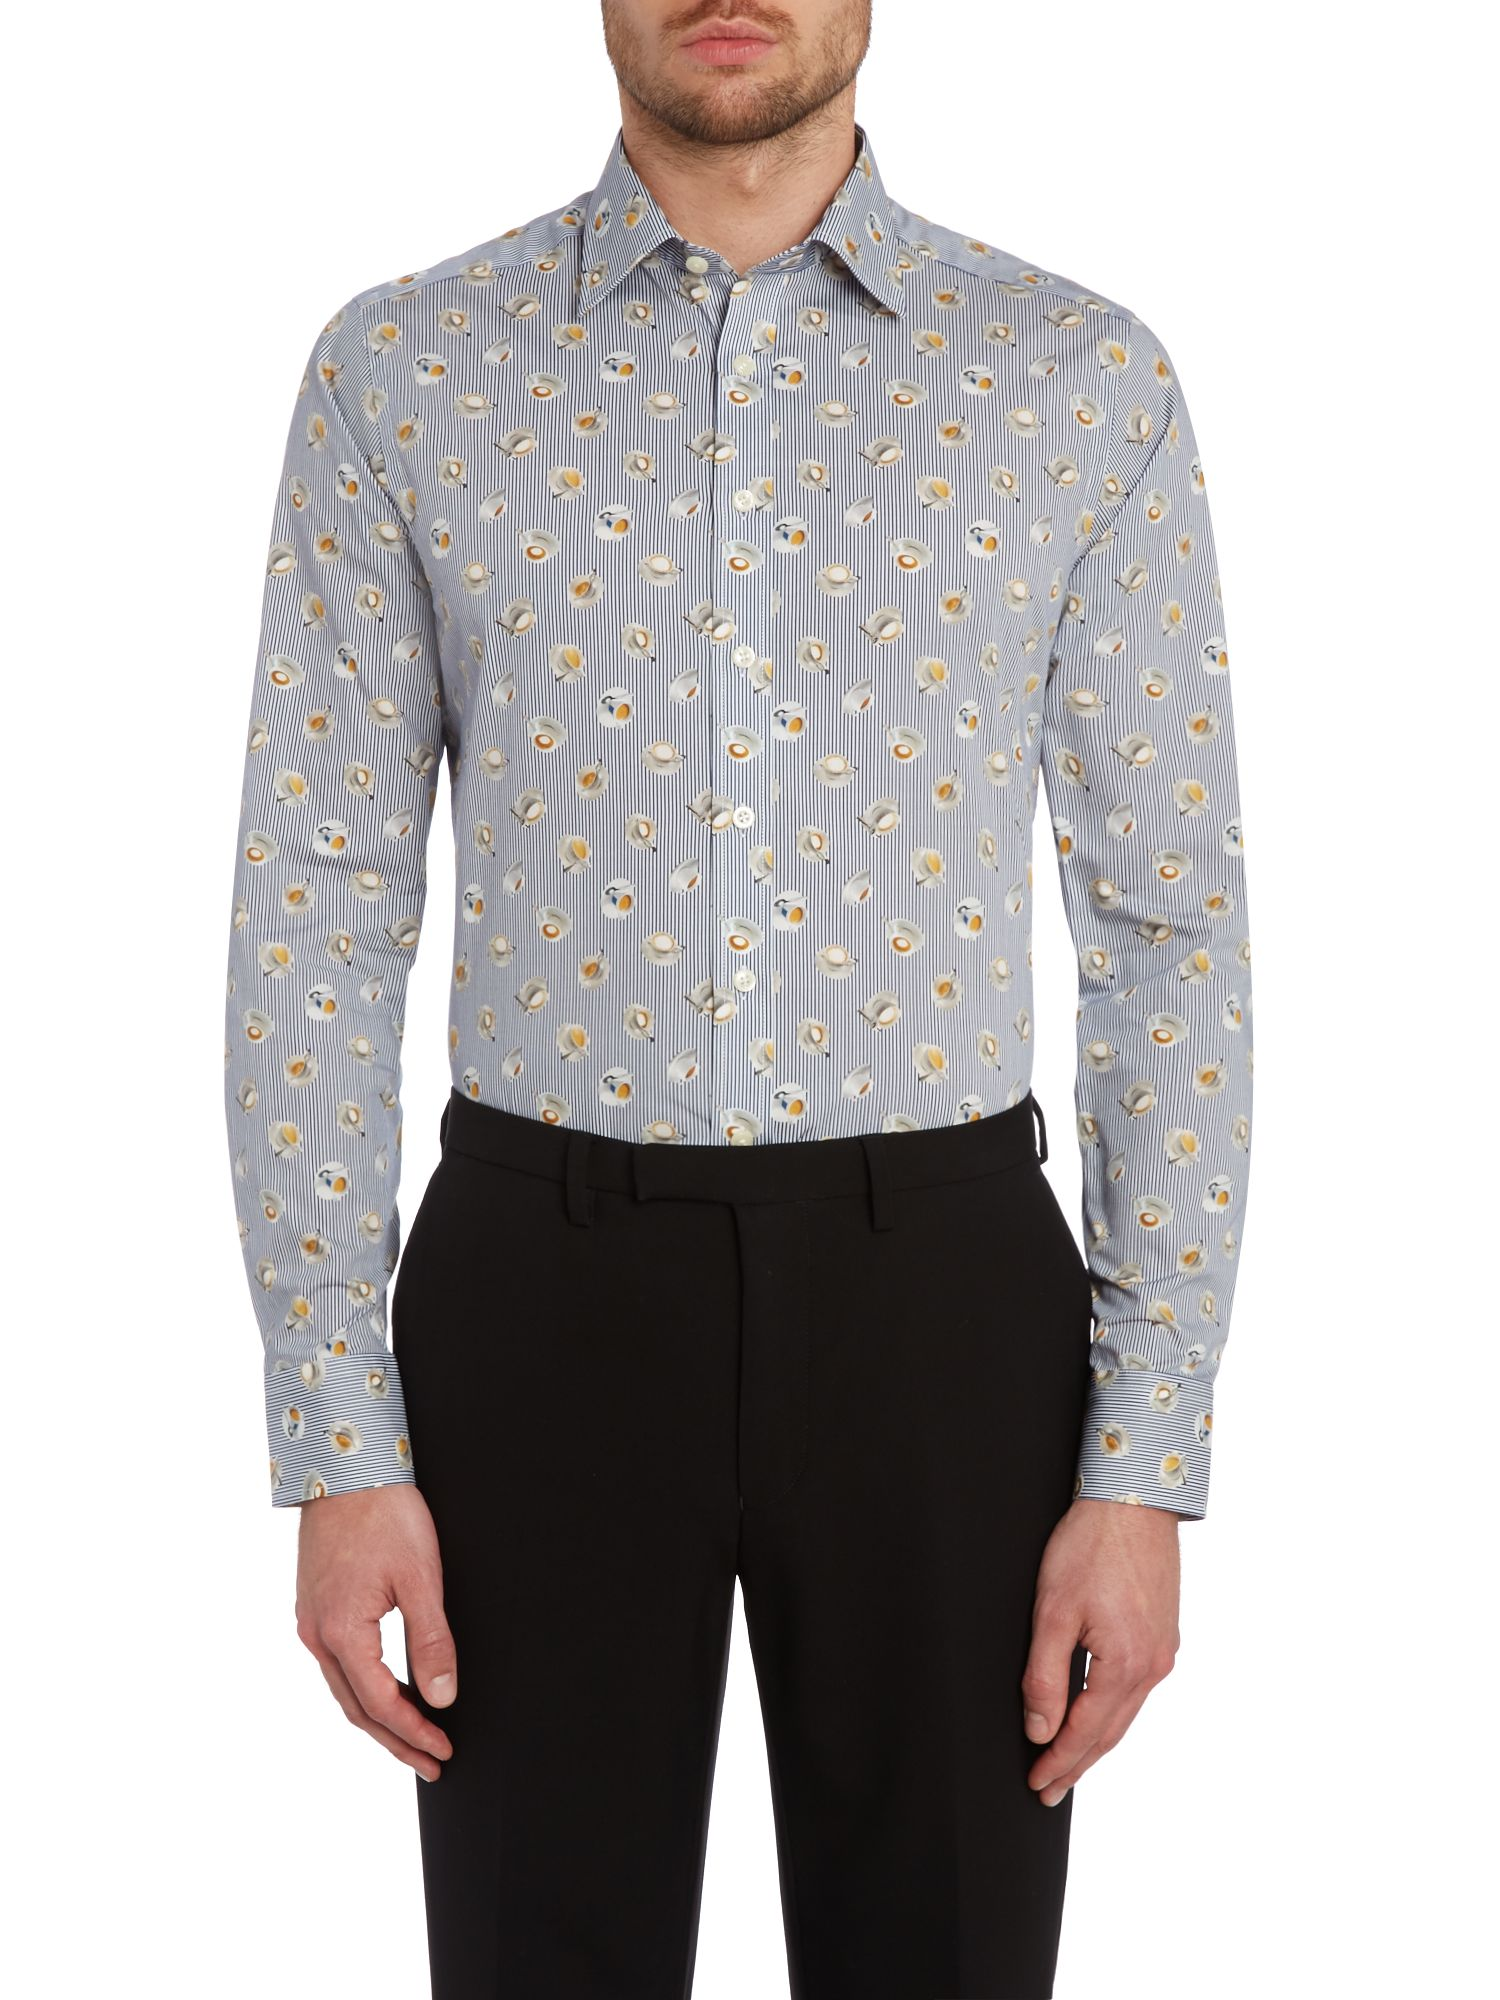 Teacup slim fit shirt